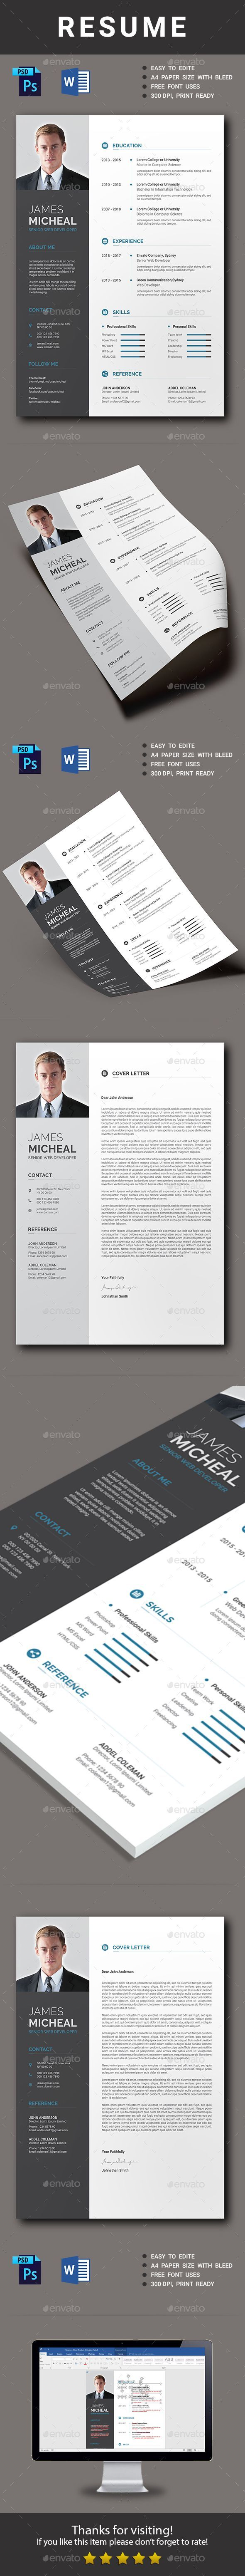 sample of resignation letter%0A Resume